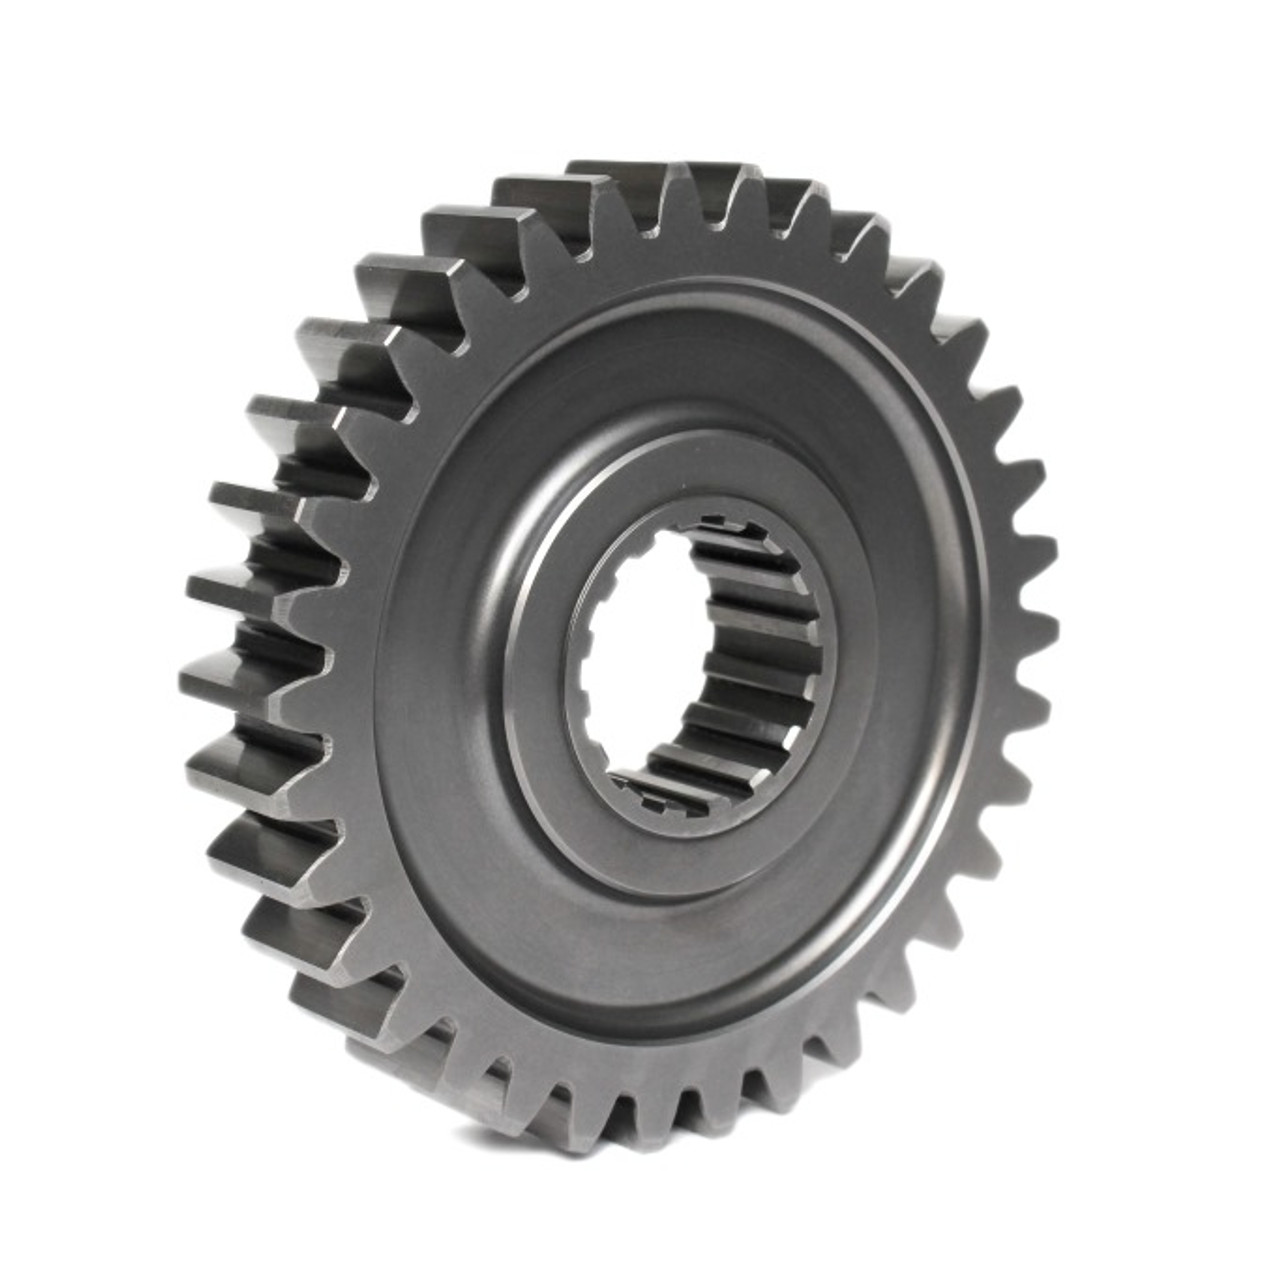 34 tooth gearbox gear